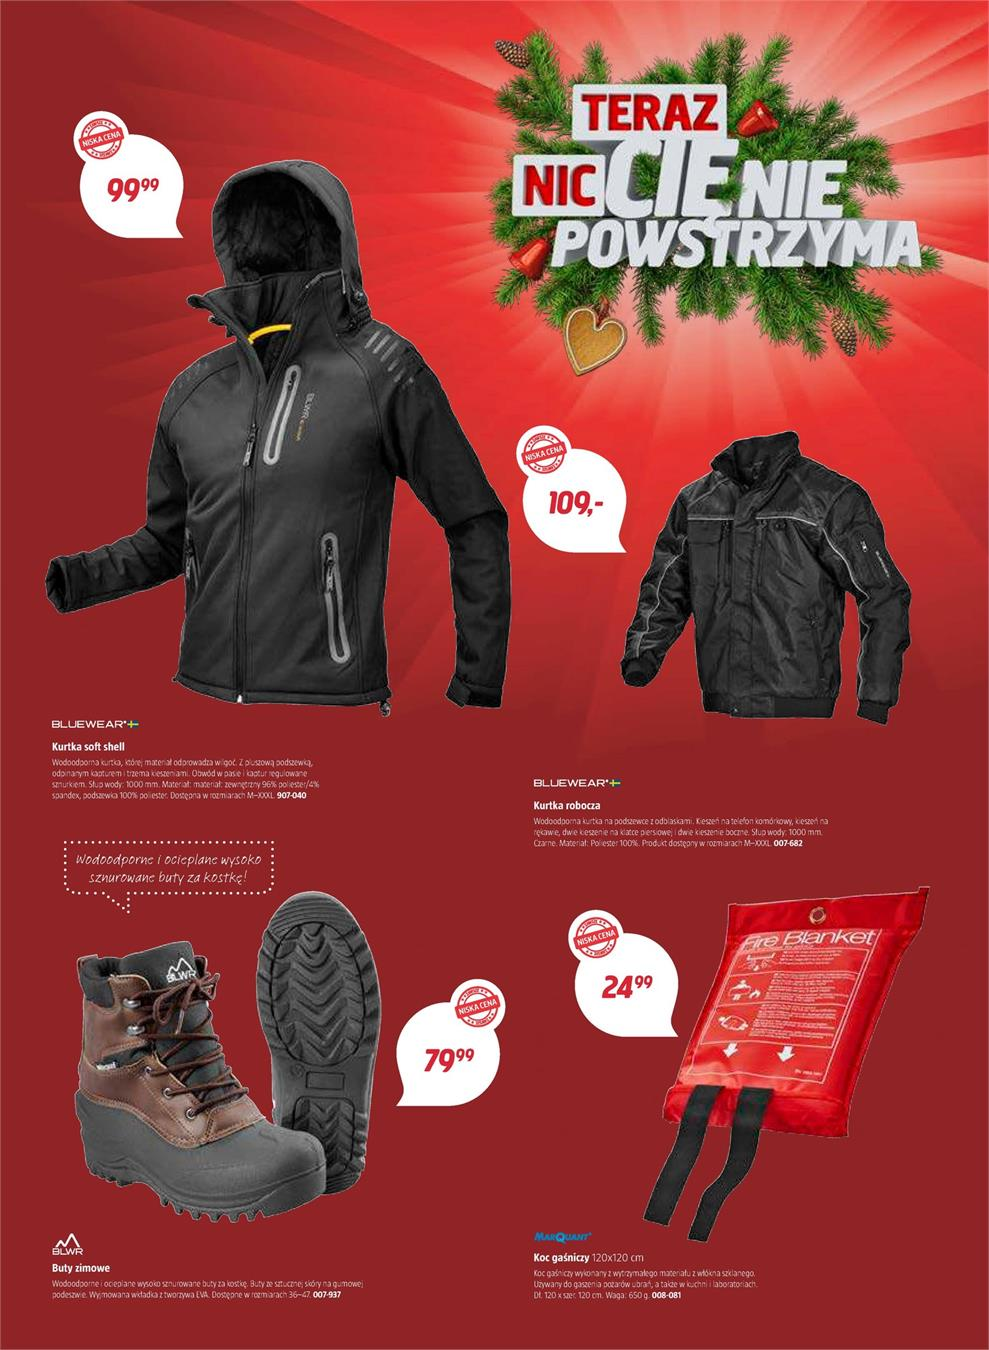 Gazetka Jula Poland Sp. z o.o. nr 5 od 2019-11-08 do 2019-11-24